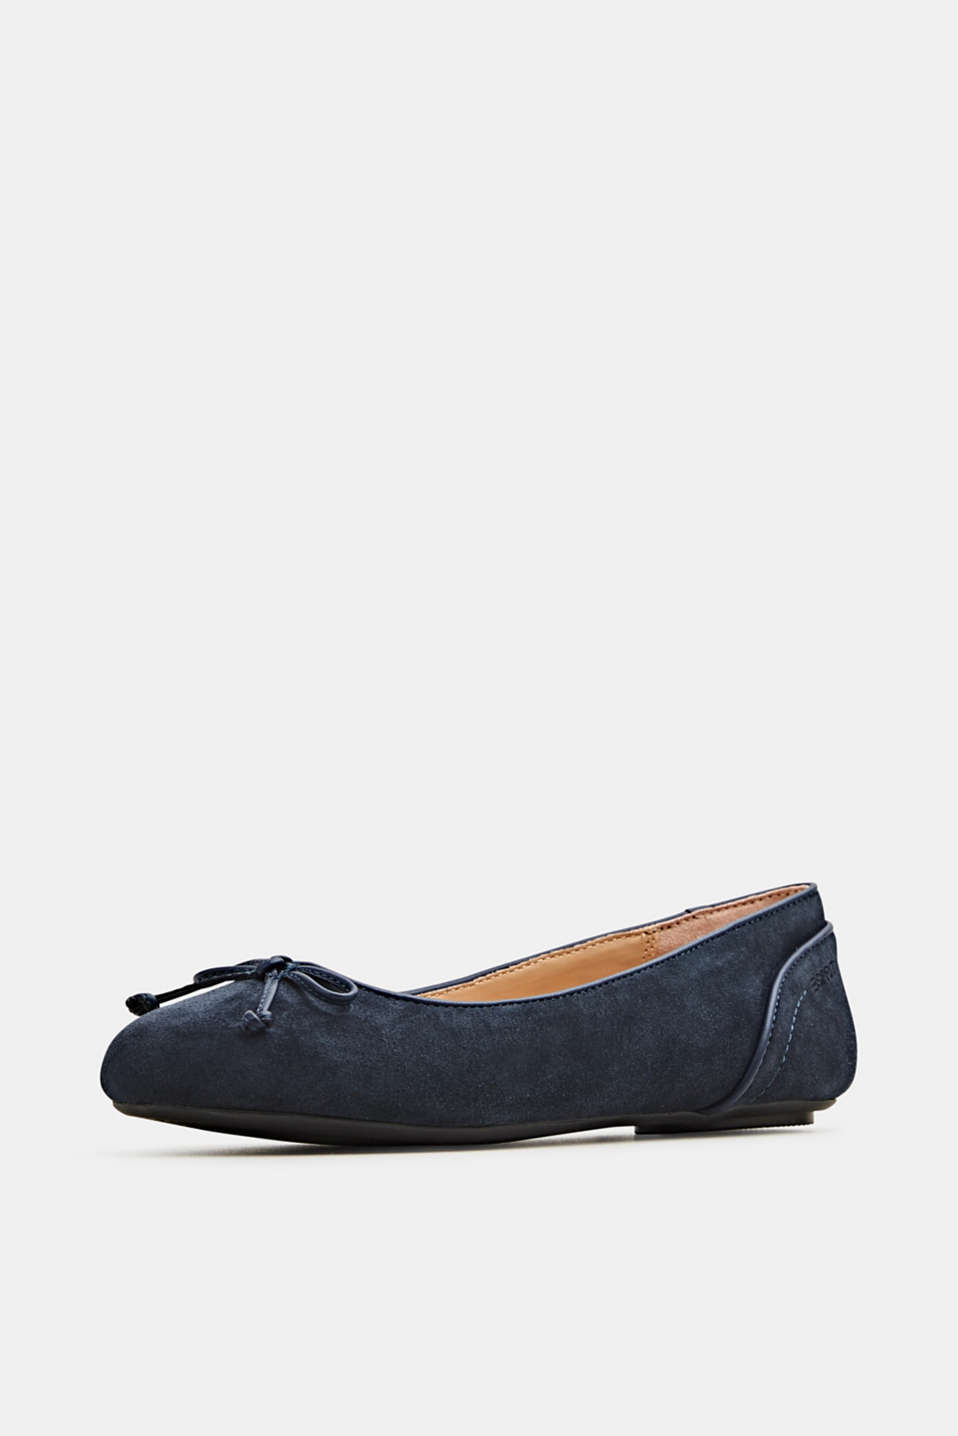 Basic suede ballerinas, NAVY, detail image number 2